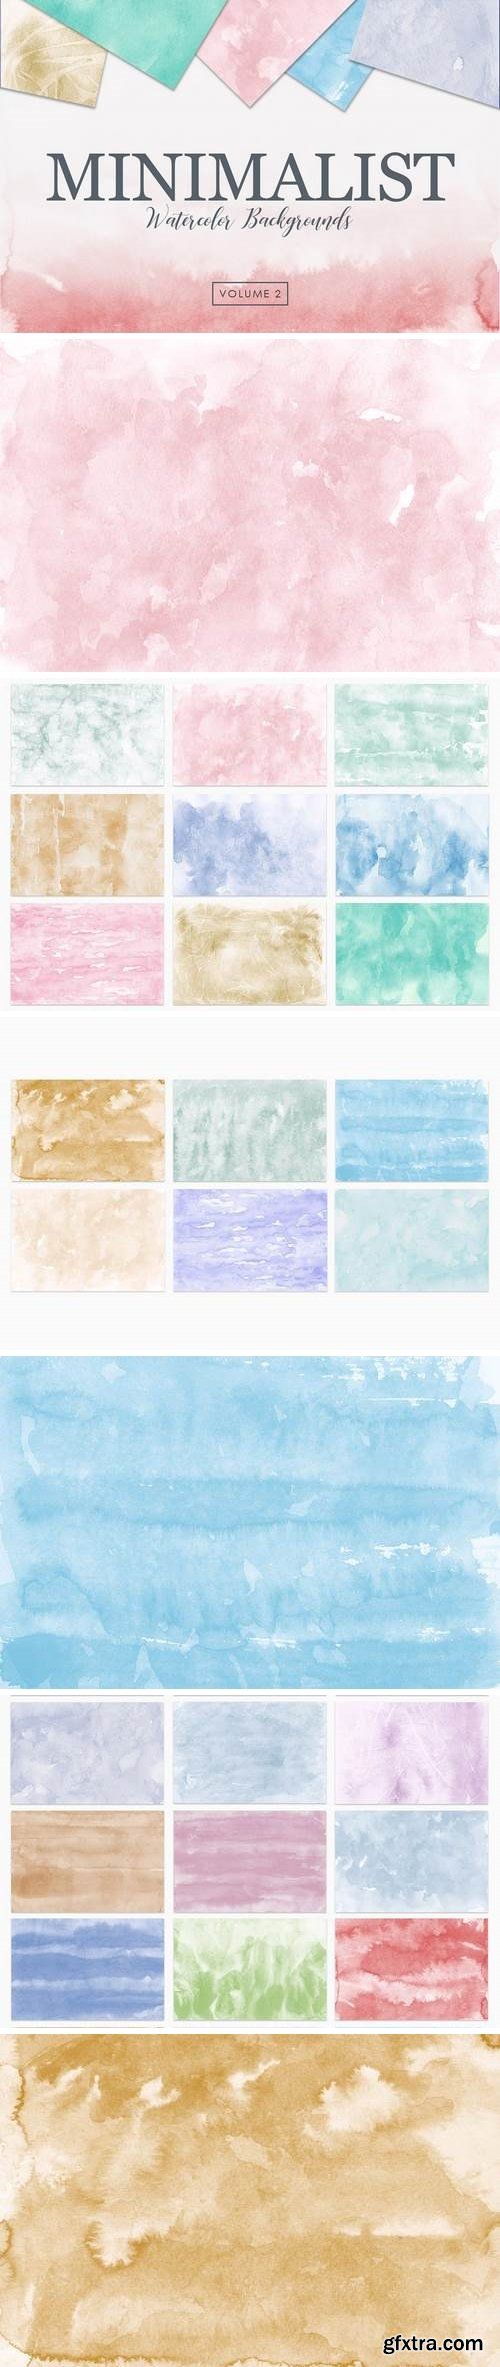 Minimalist Watercolor Backgrounds Vol. 2